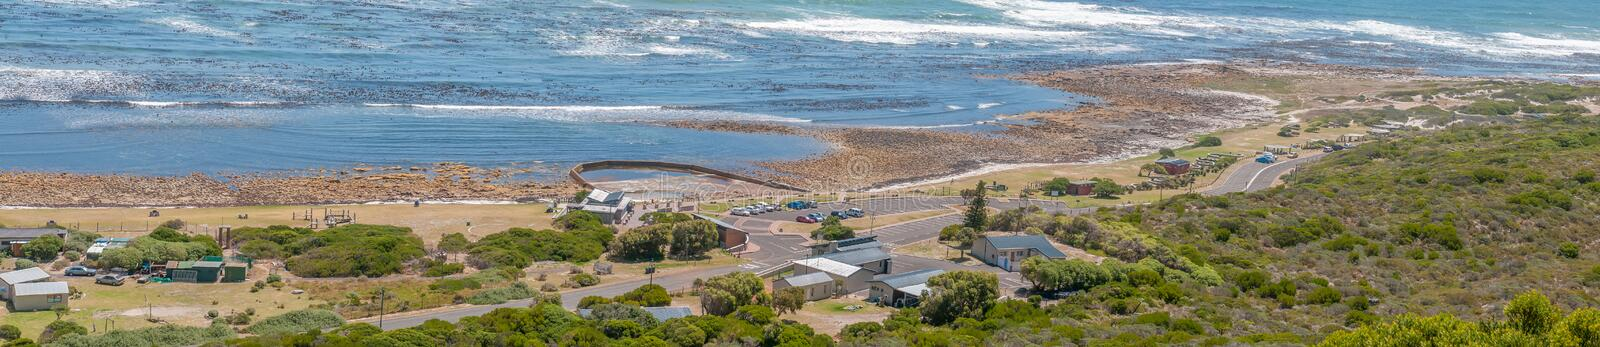 Beach area south of the Slangkop Lighthouse at Kommetjie. CAPE TOWN, SOUTH AFRICA - DECEMBER 12, 2014: Panorama of the beach area south of the Slangkop royalty free stock images